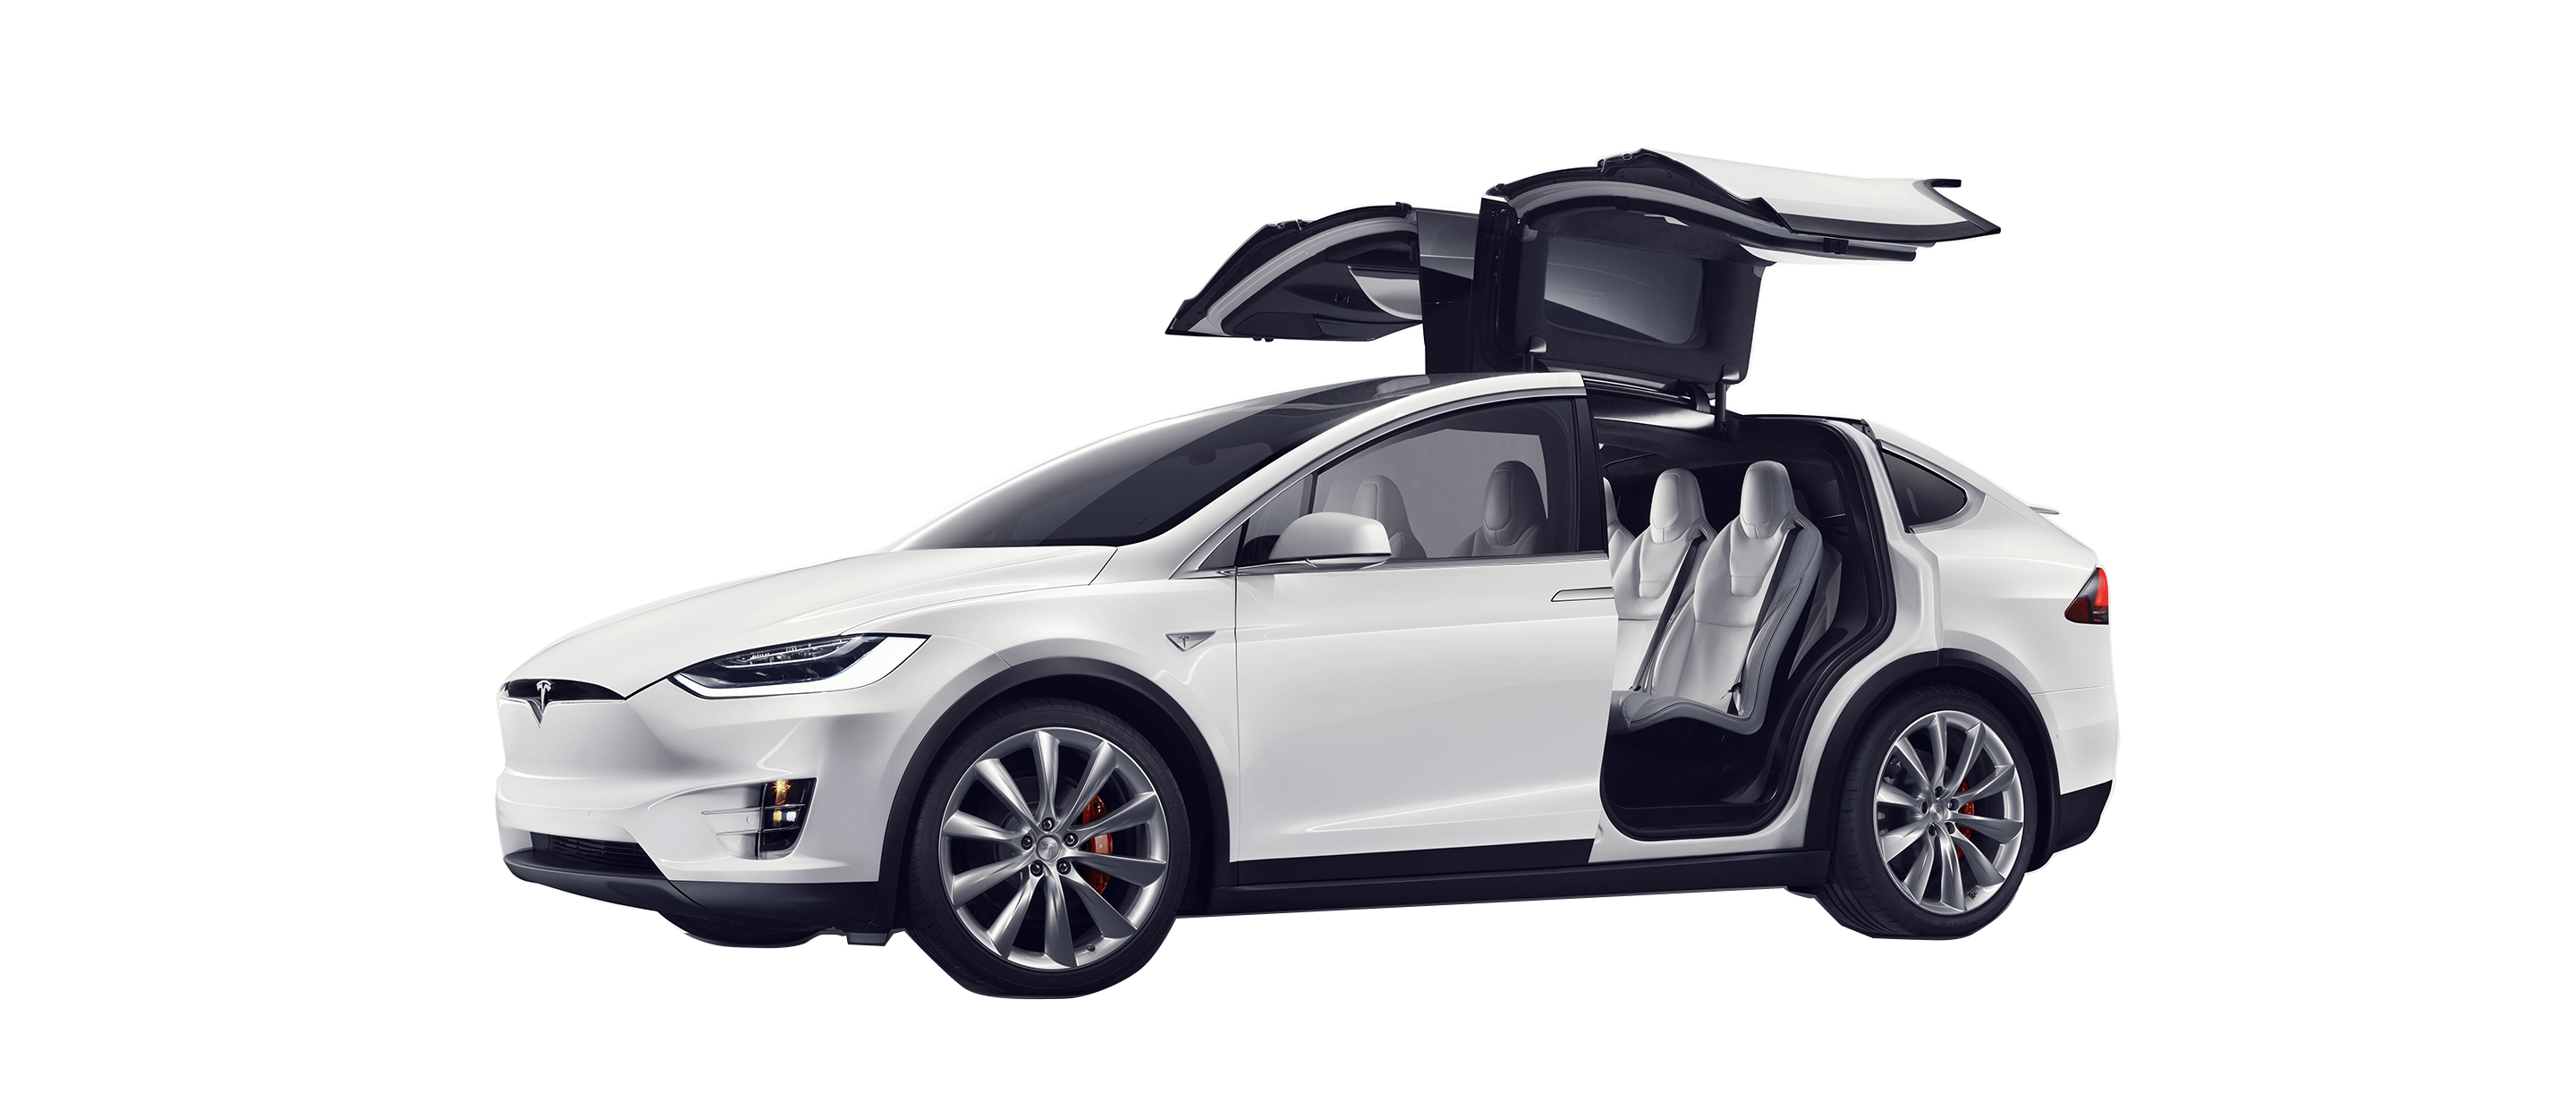 Model X Tesla Suv Electric Cars Pinterest Tesla Motors